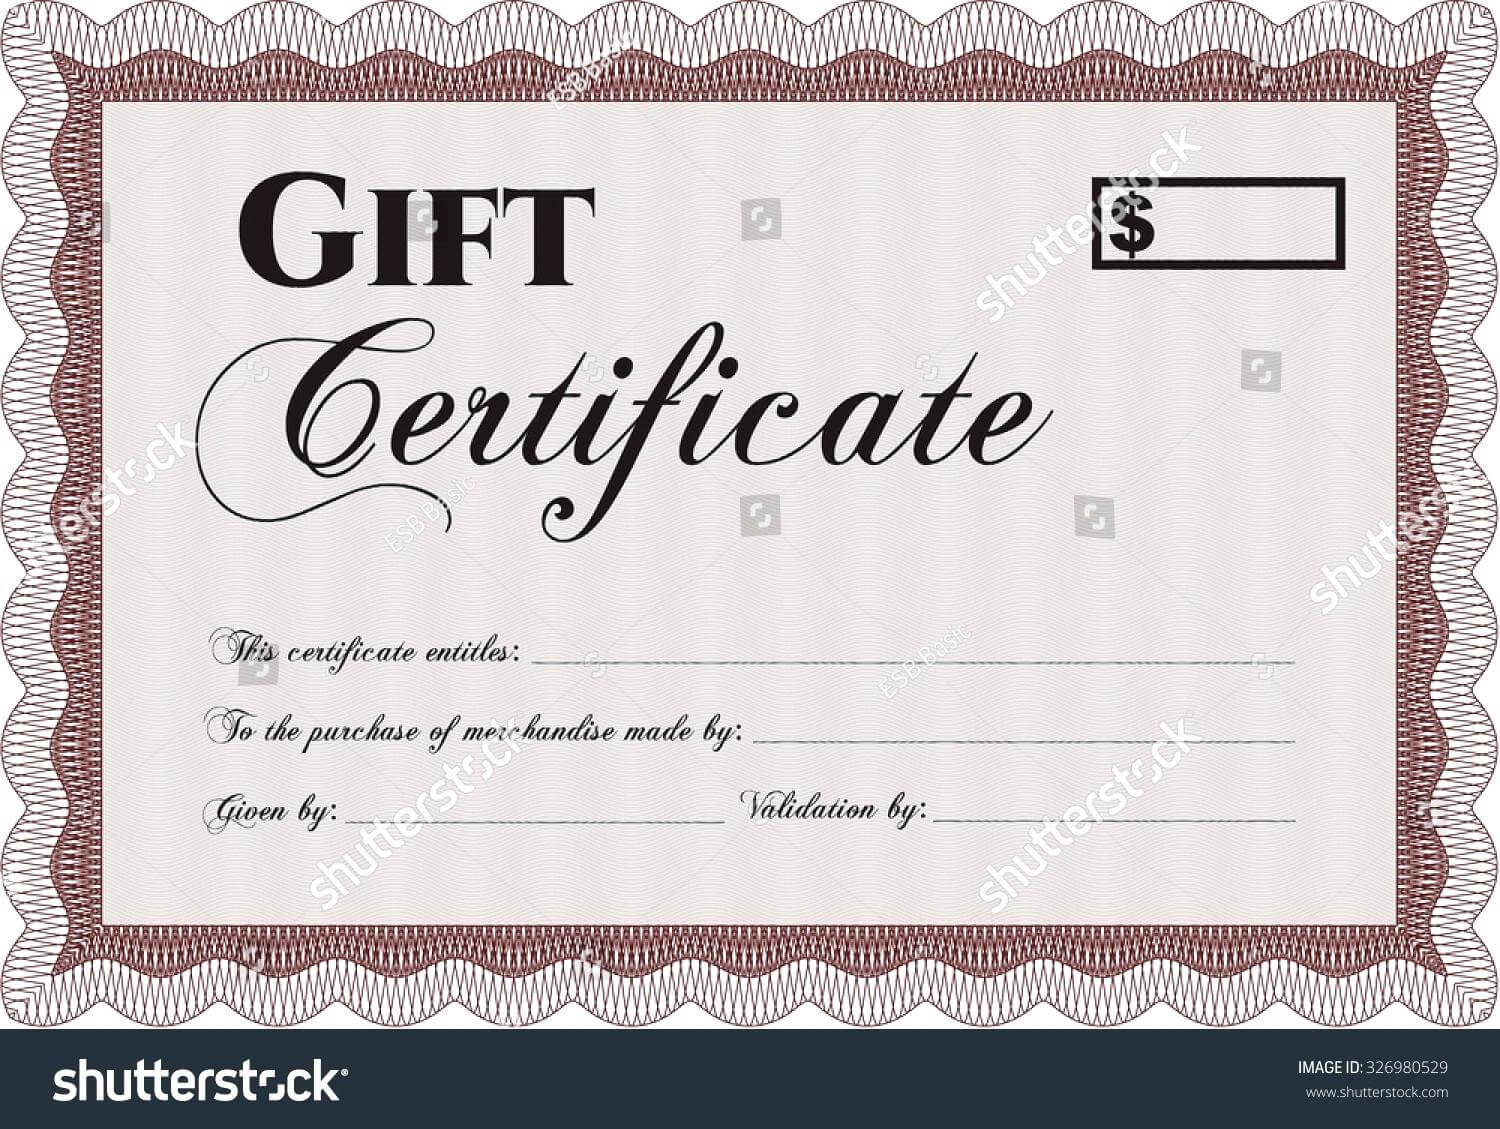 Best Ideas For This Certificate Entitles The Bearer Template For This Certificate Entitles The Bearer Template